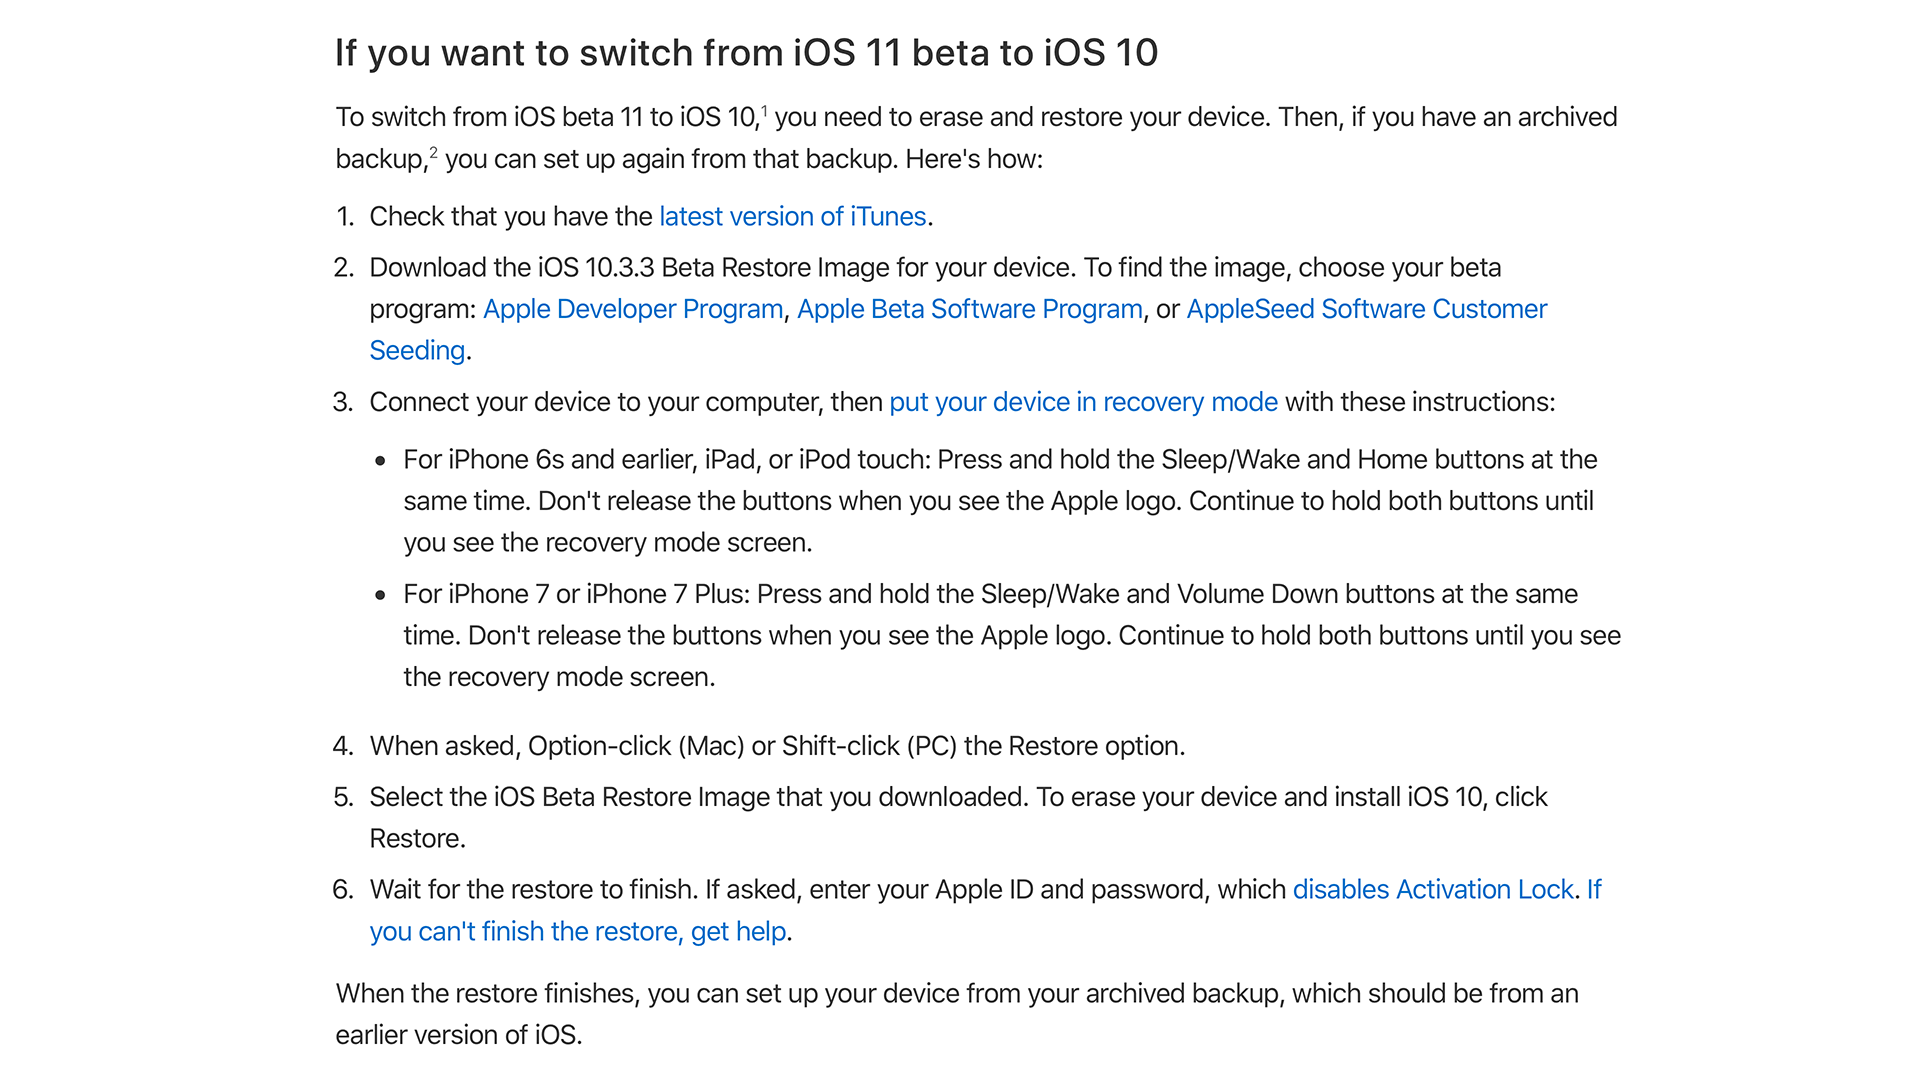 Switching-from-iOS-11-to-iOS-10-Apple-guide